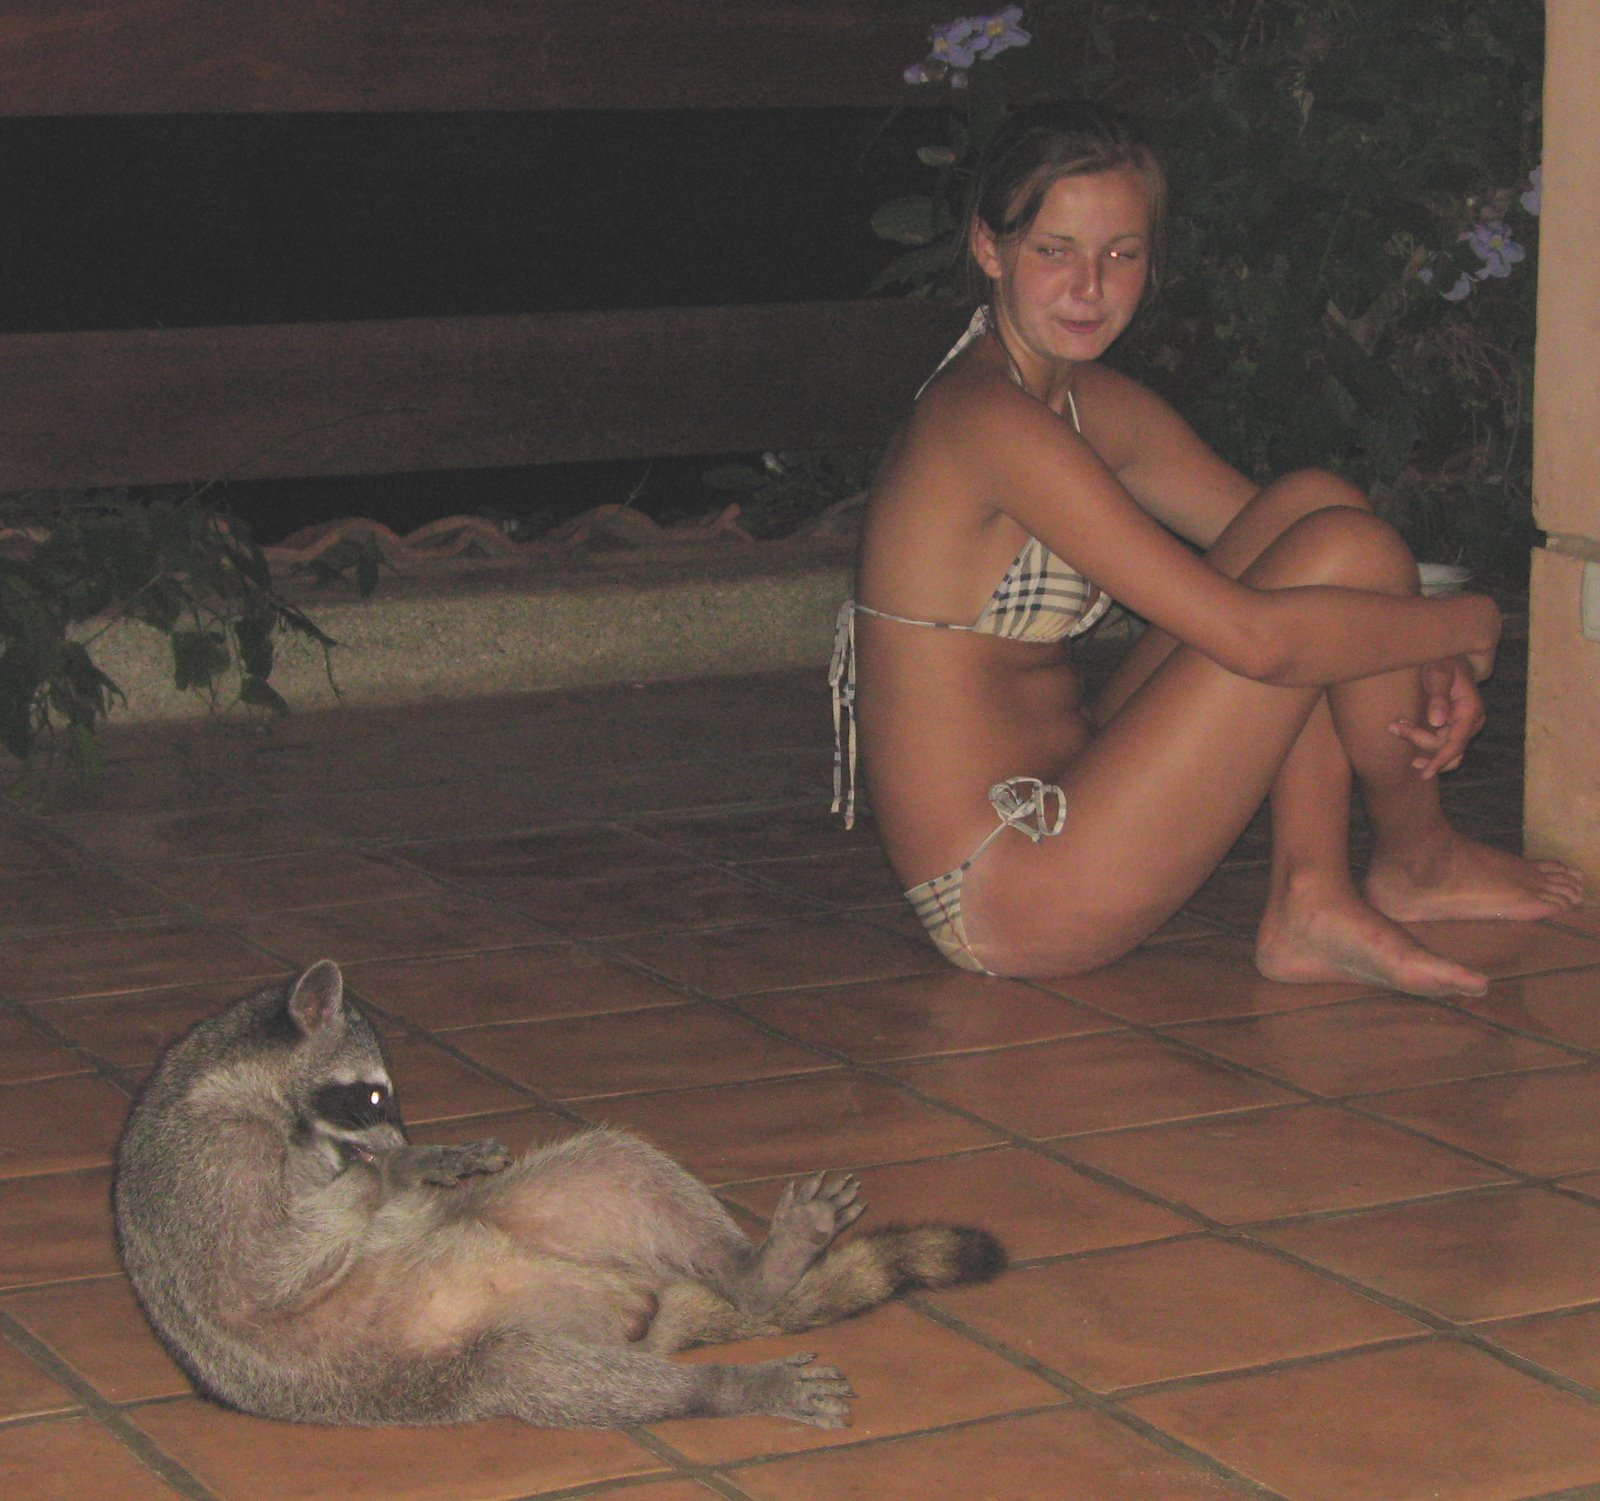 [08-9-10+racoon+&+girl+(edited,+trimmed)+IMG_3381.jpg]